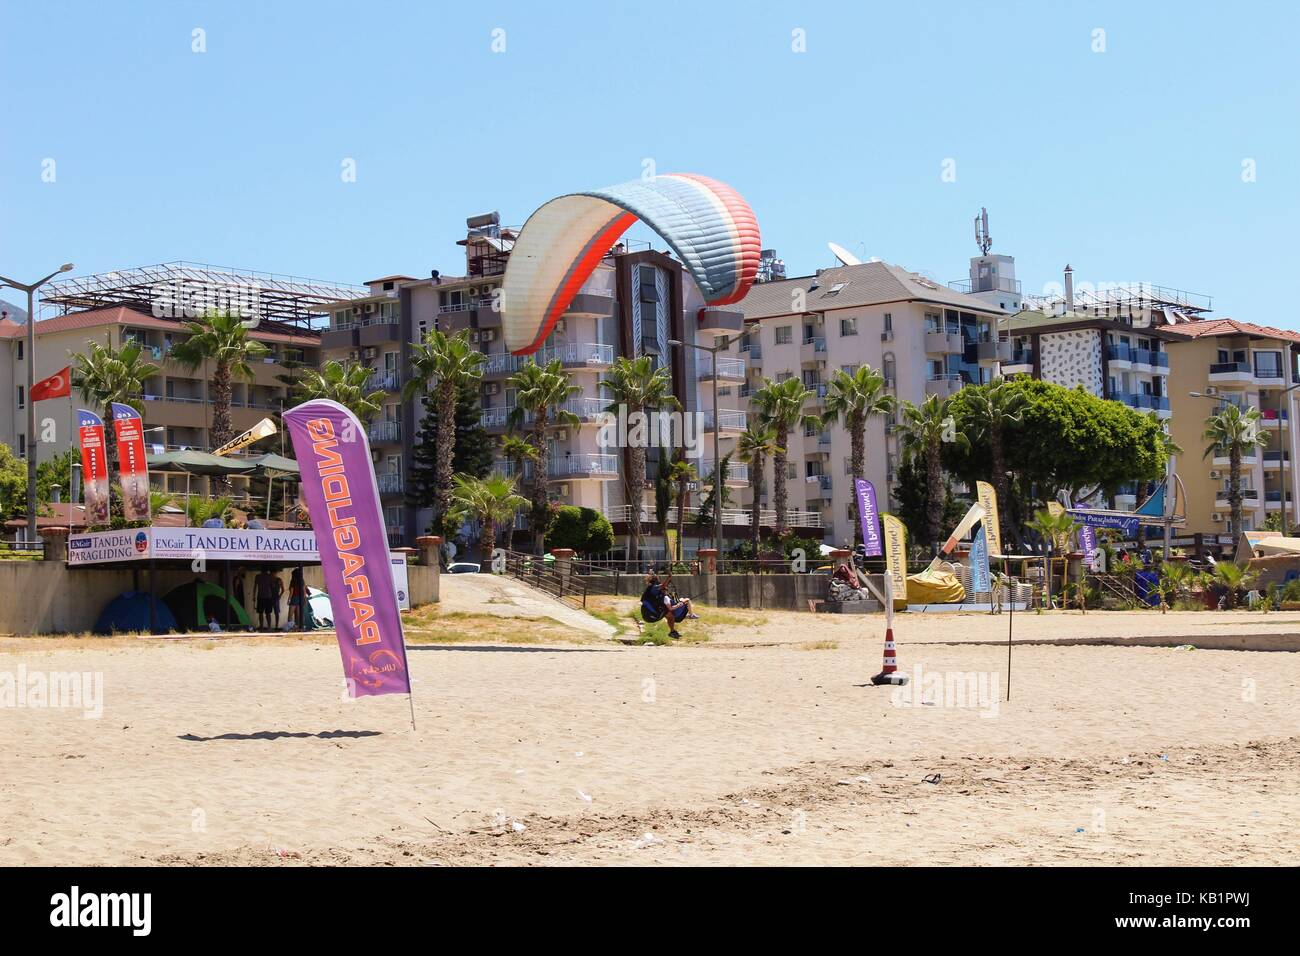 Paraglider landing in a special zone at Cleopatra Beach in Alanya (Turkey). Stock Photo